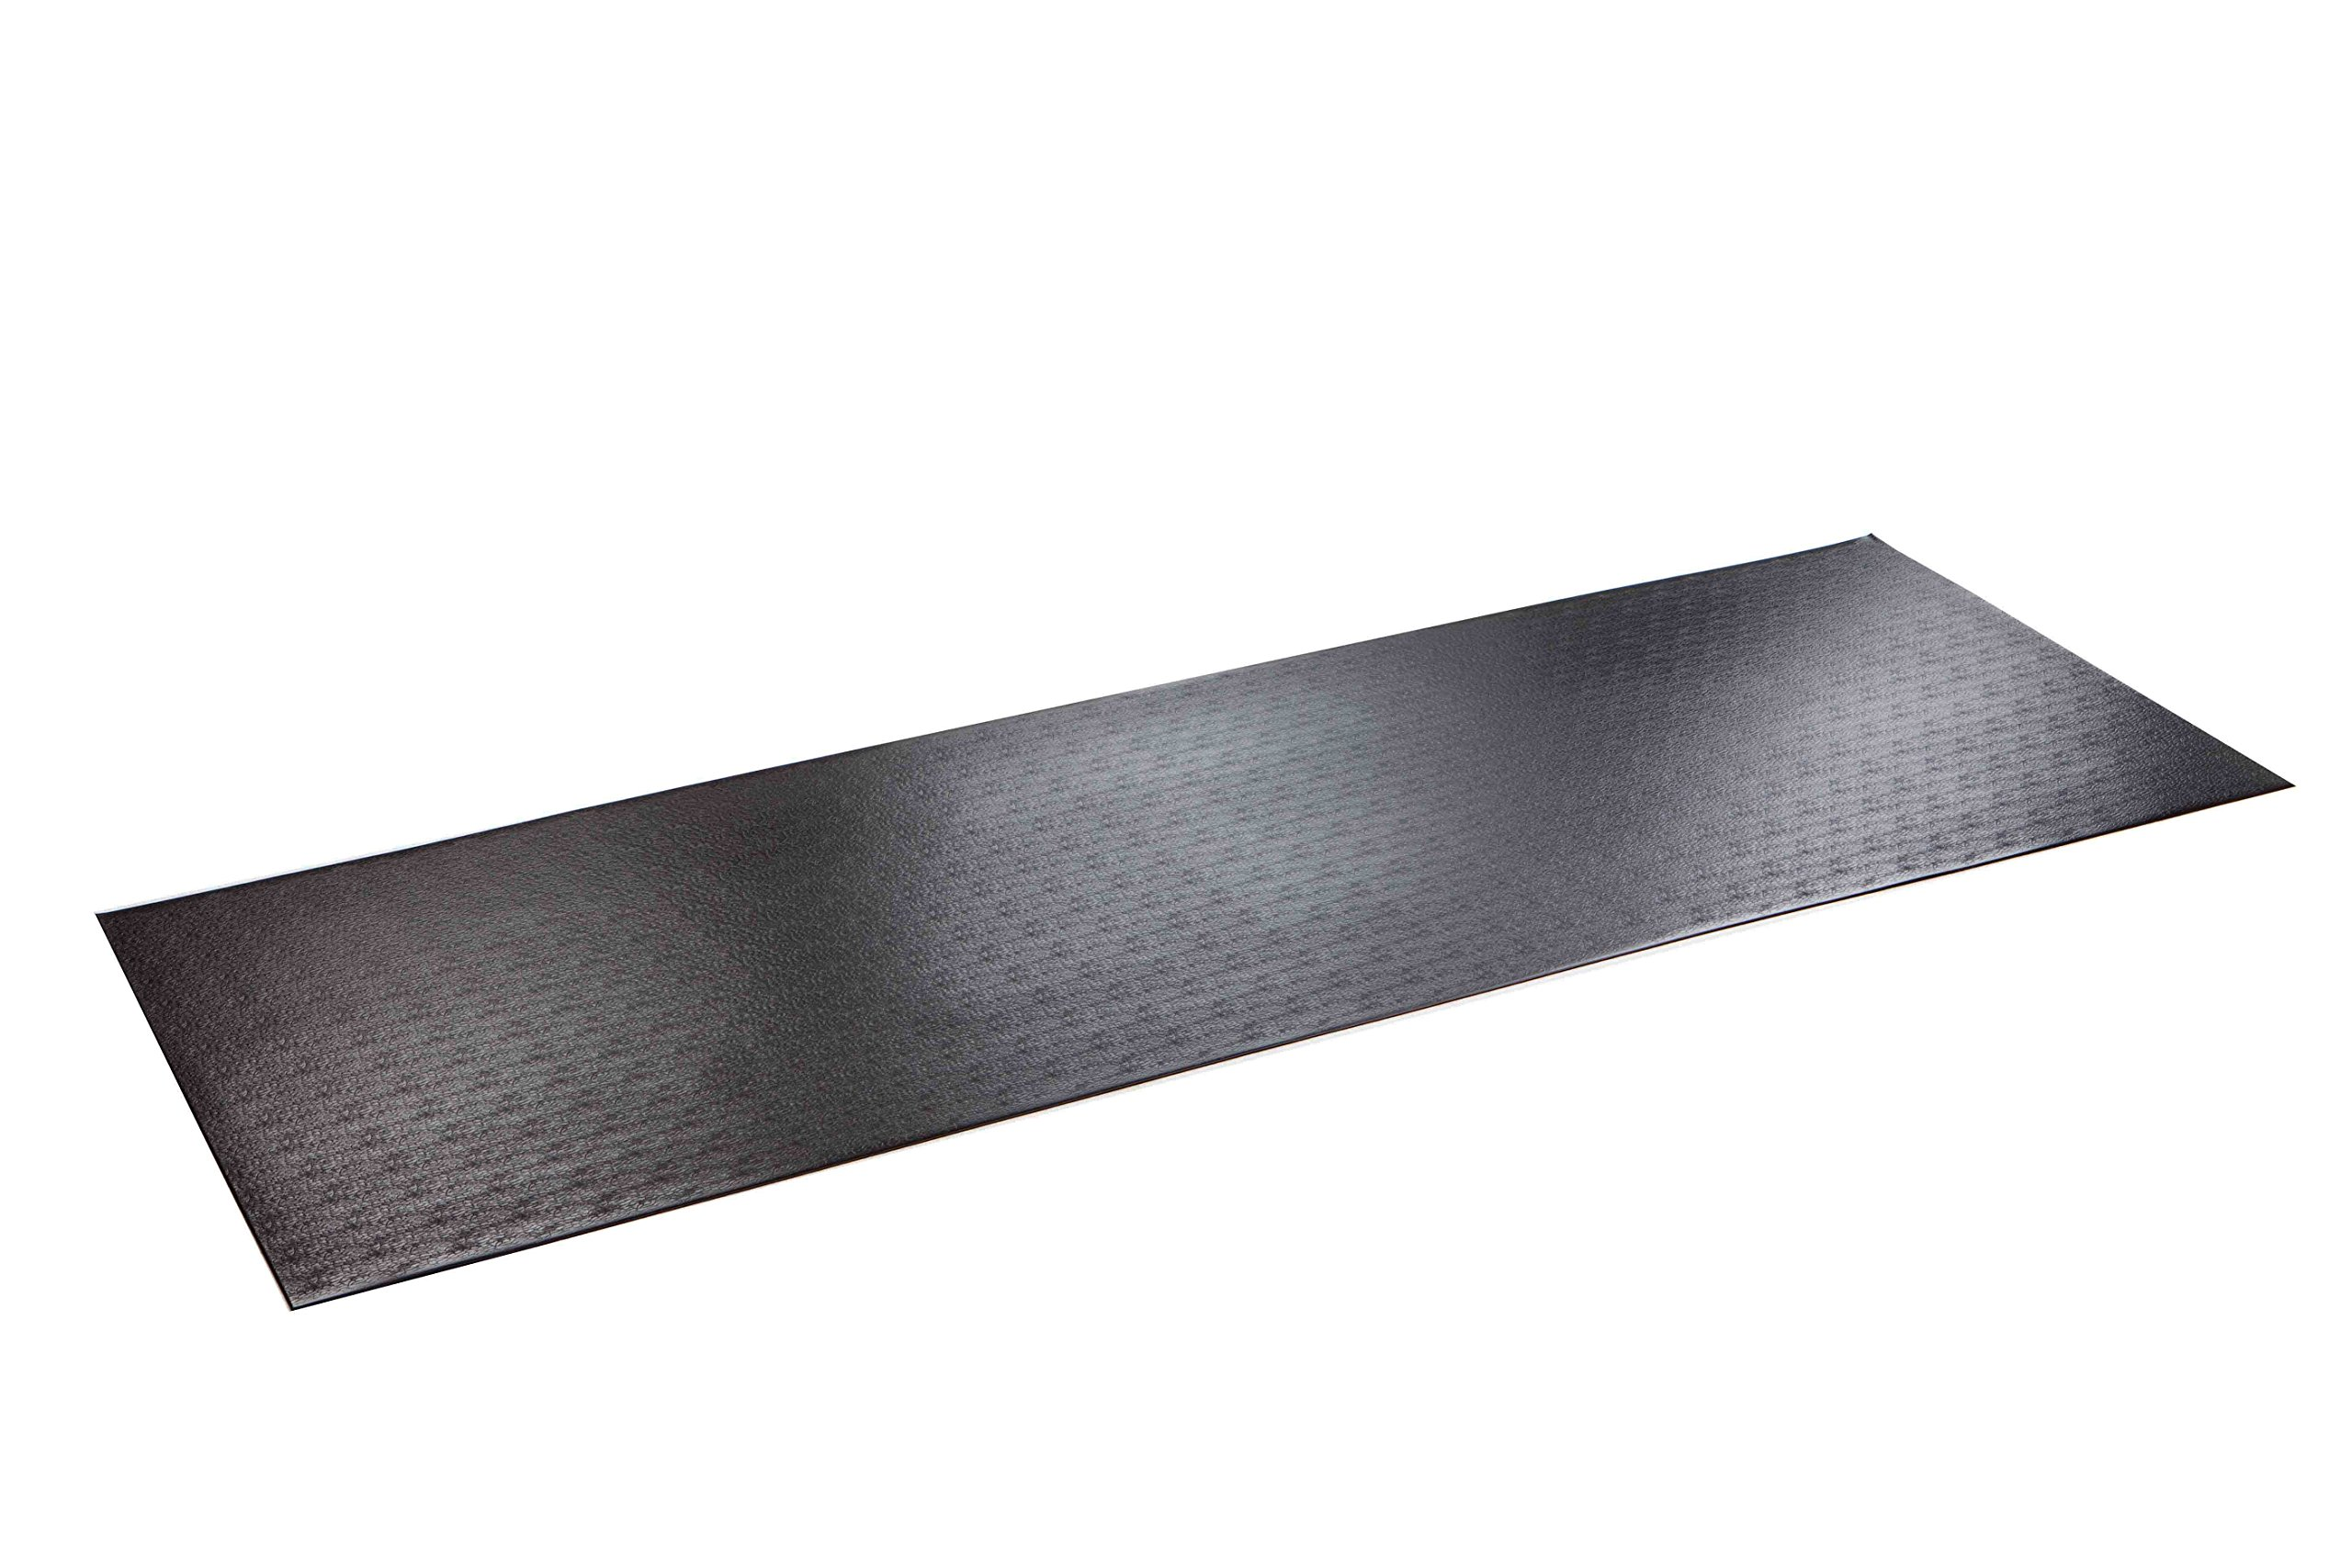 SuperMats High Density Commercial Grade Solid Equipment Mat 29GS Made in U.S.A. for Large Treadmills Ellipticals Rowers Water Rowing Machines Recumbent Bikes and Exercise Equipment  (3-Feet x 8.5-Feet) (36'' x 102'') (91.4 cm x 259.1 cm)